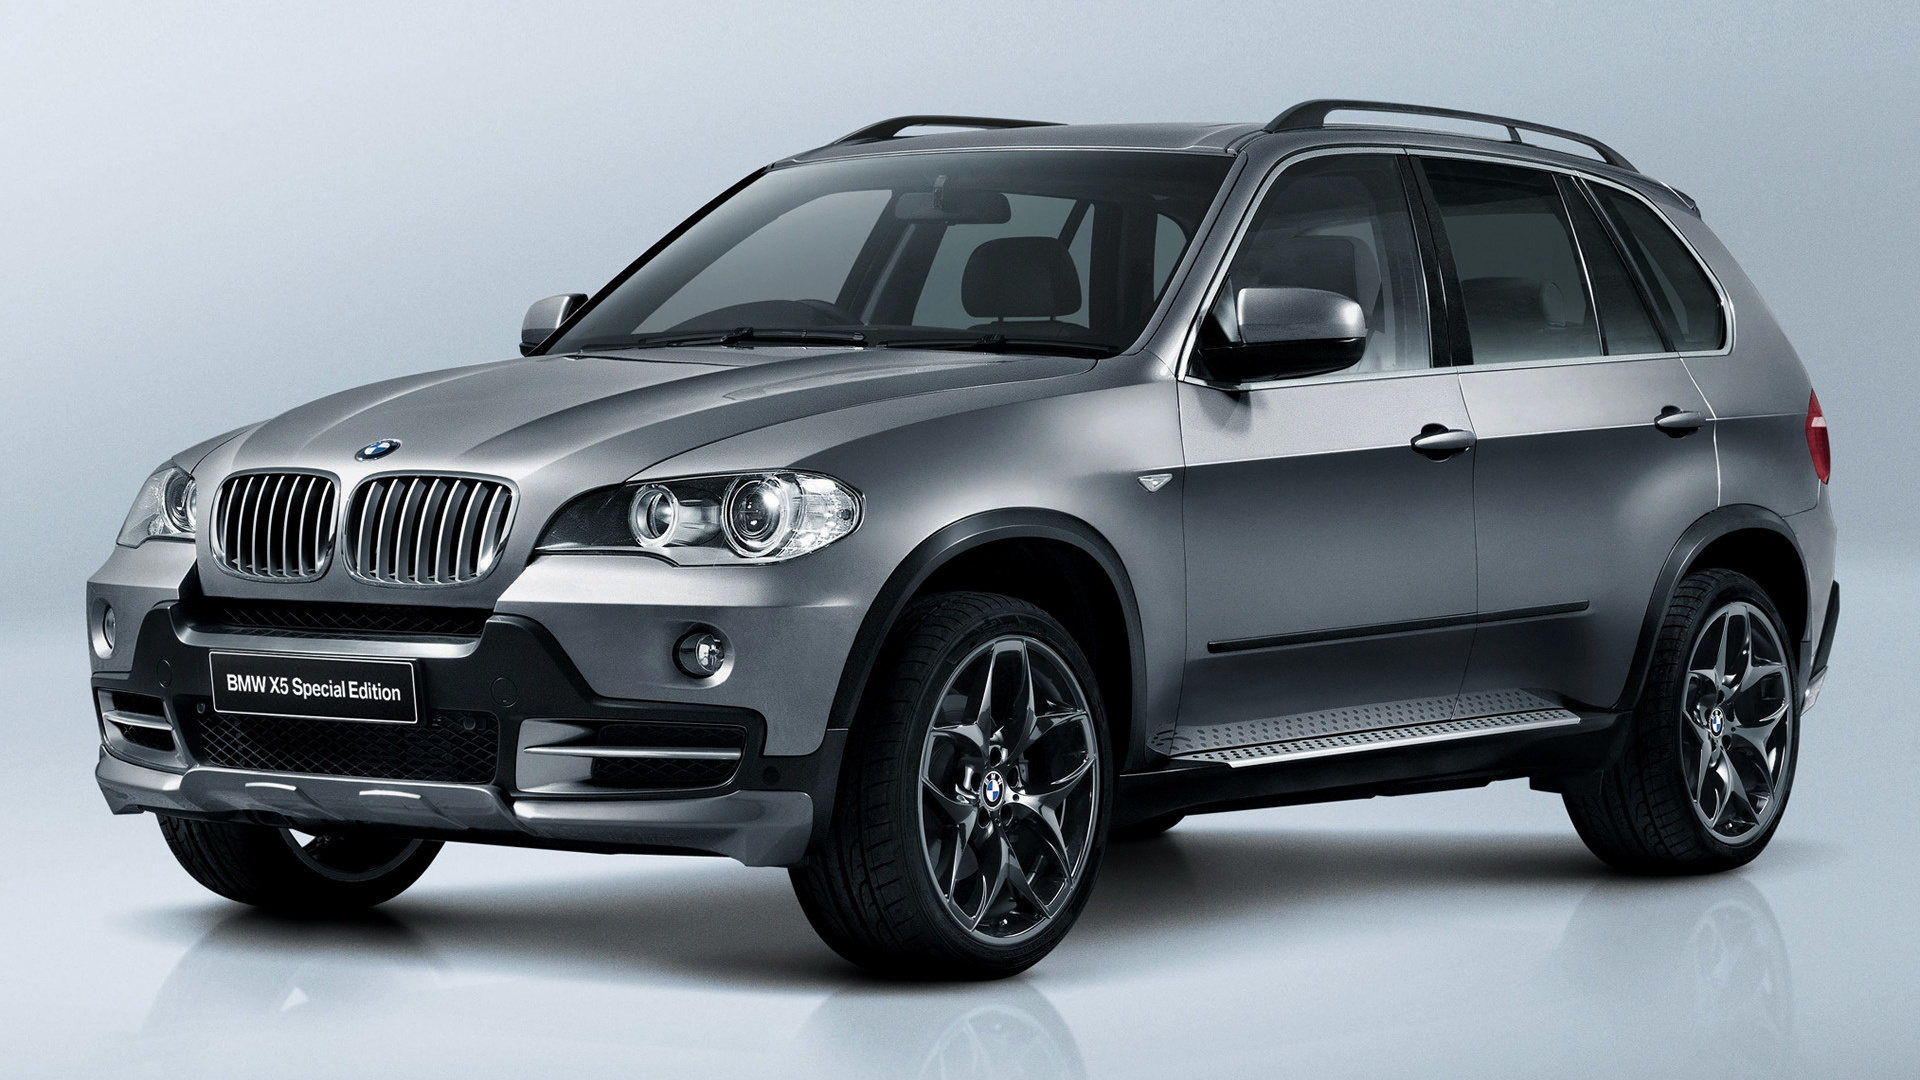 2009 BMW X5 Special Edition (JP) - Wallpapers and HD ...